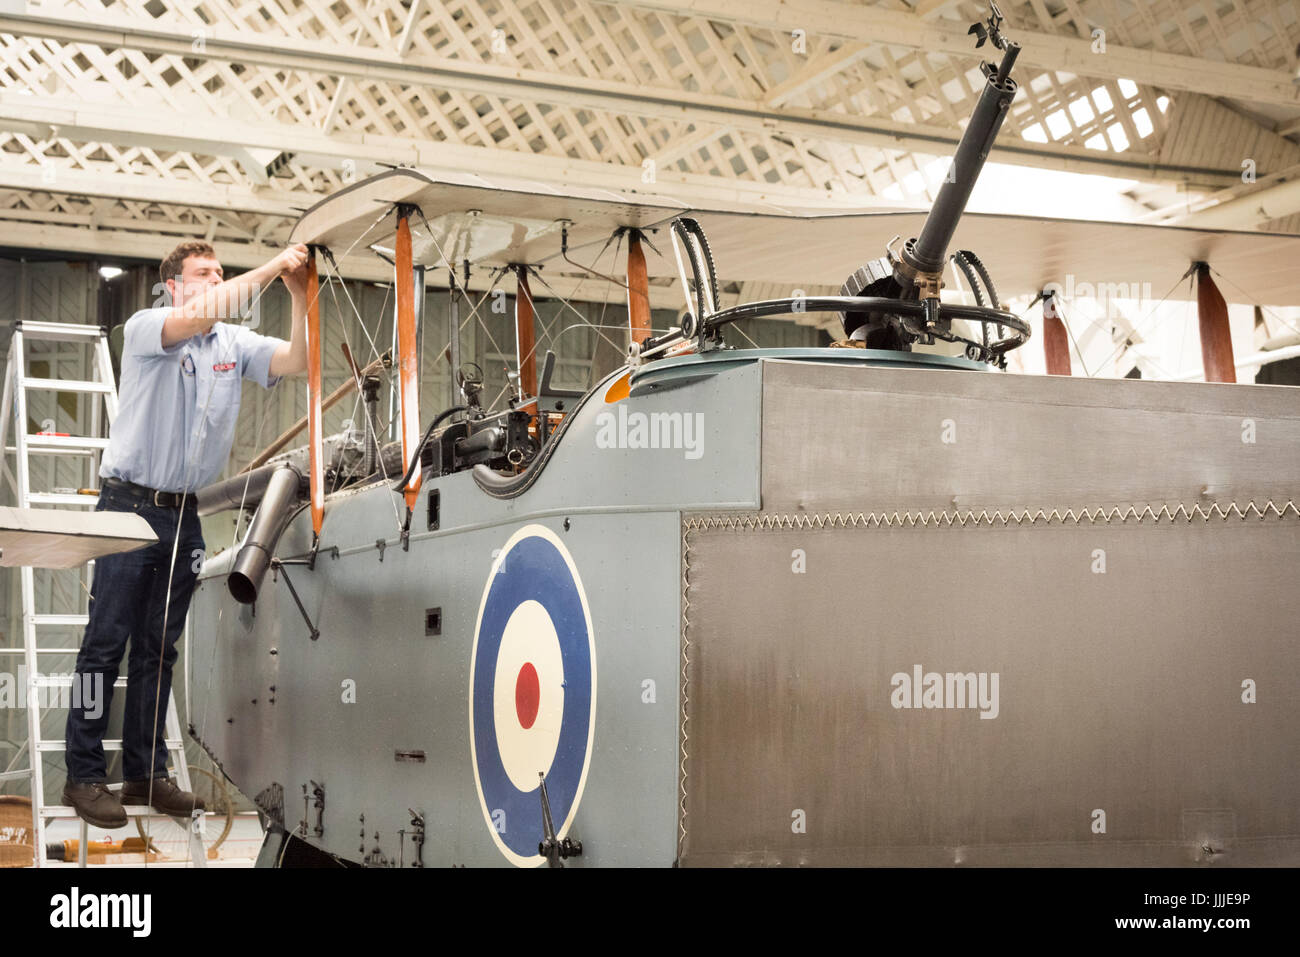 Duxford Cambridgeshire, UK. 20th July, 2017. George Taylor an Engineer works on a rare first World War De Havilland DH9 bomber aircraft that has been fully restored and is now being assembled for display and flight at the Imperial War Museum. The plane is 100 years old, being assembled in a WW1 hanger on the 100th anniversary of the Imperial War Museum. The plane is the only one in the UK and has been restored after being found in an elephant stable at the Palace of Bikaner, Rajasthan, India. Credit: Julian Eales/Alamy Live News Stock Photo